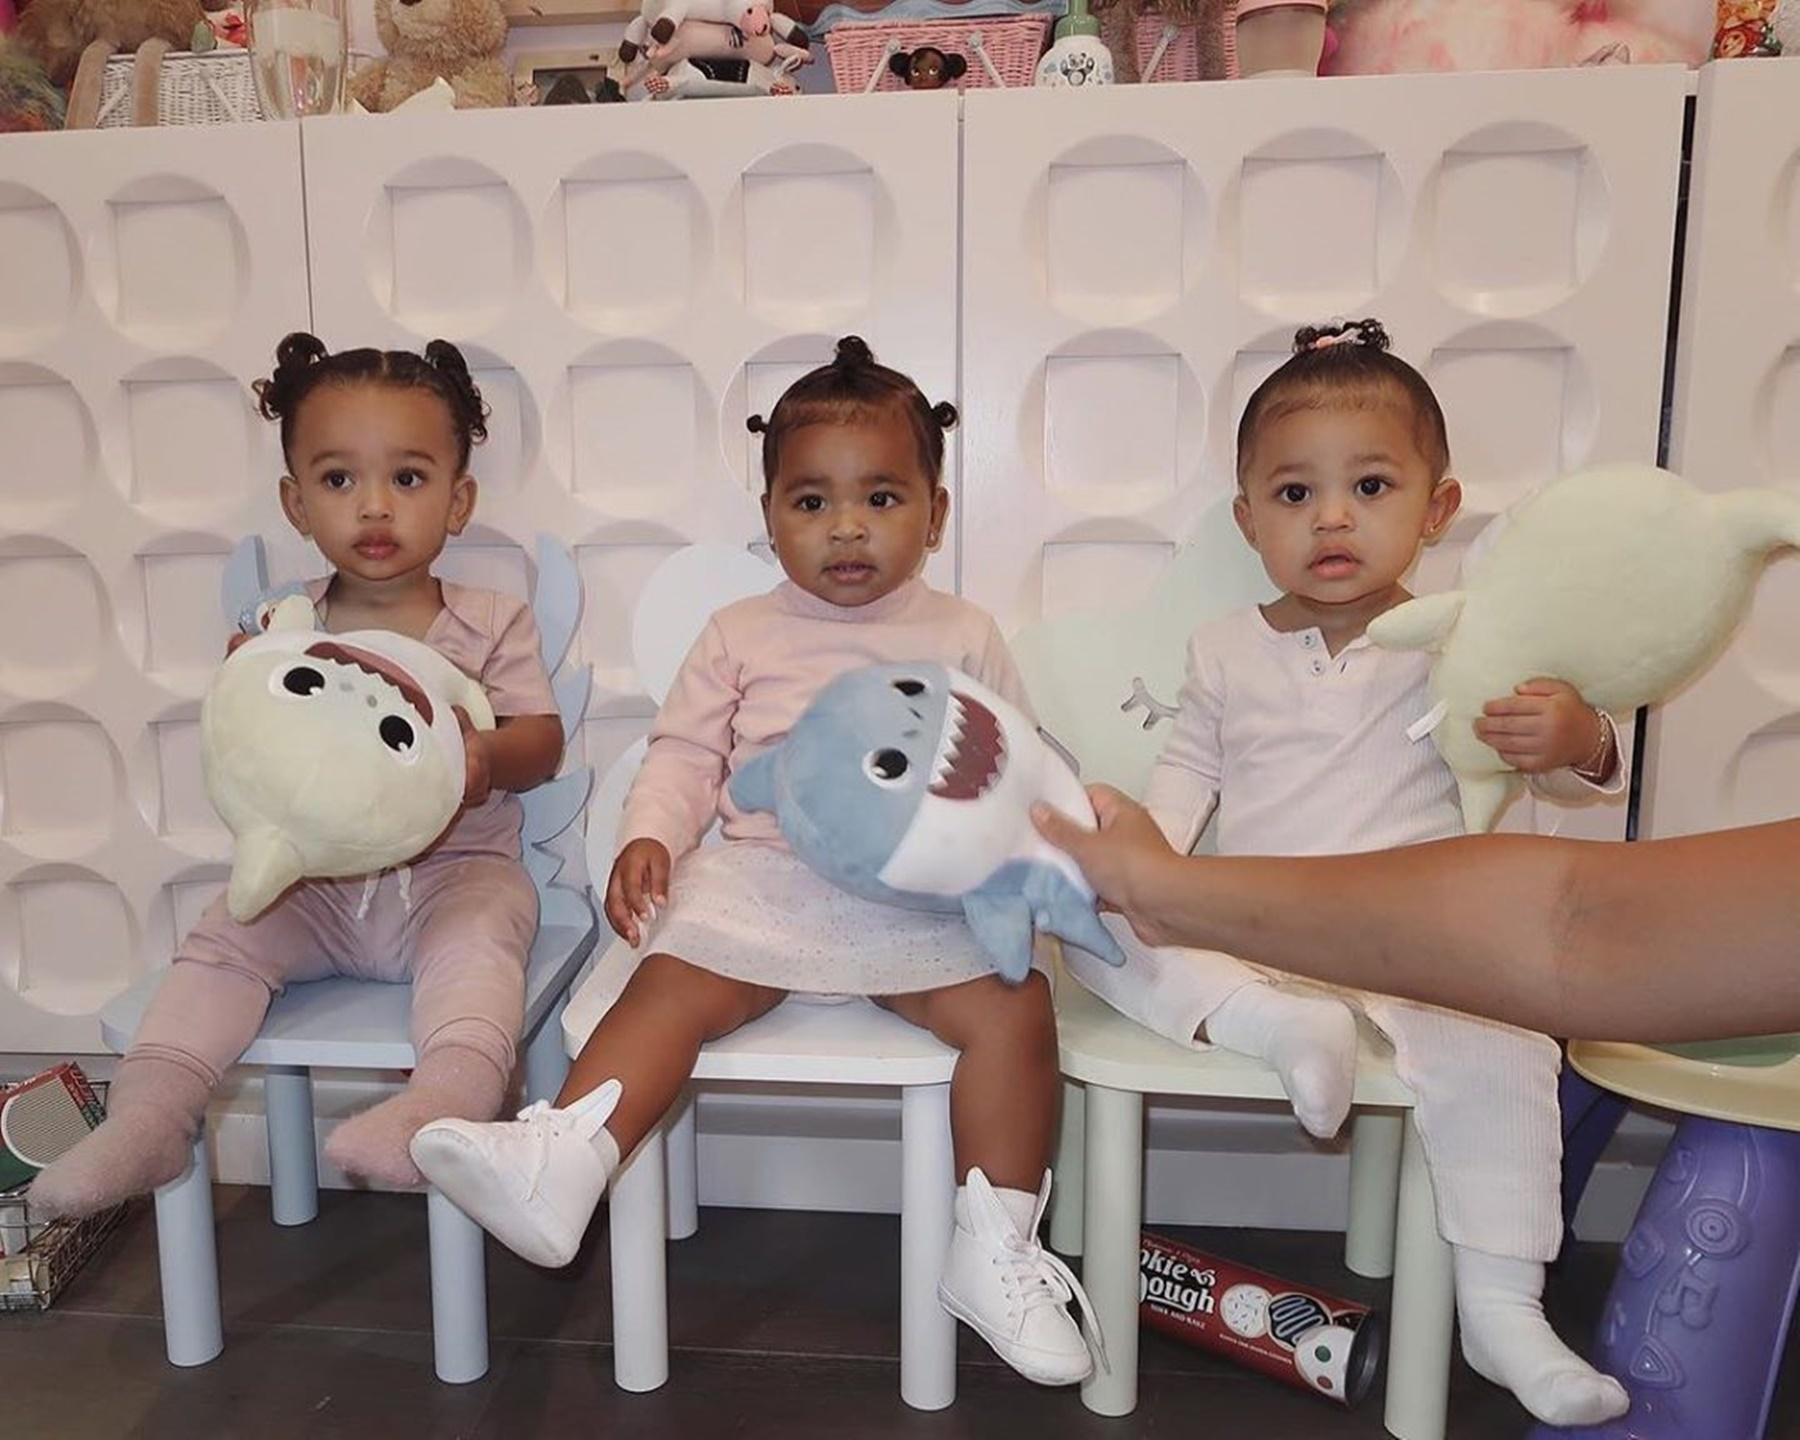 Chicago West True Thompson Stormi Webster